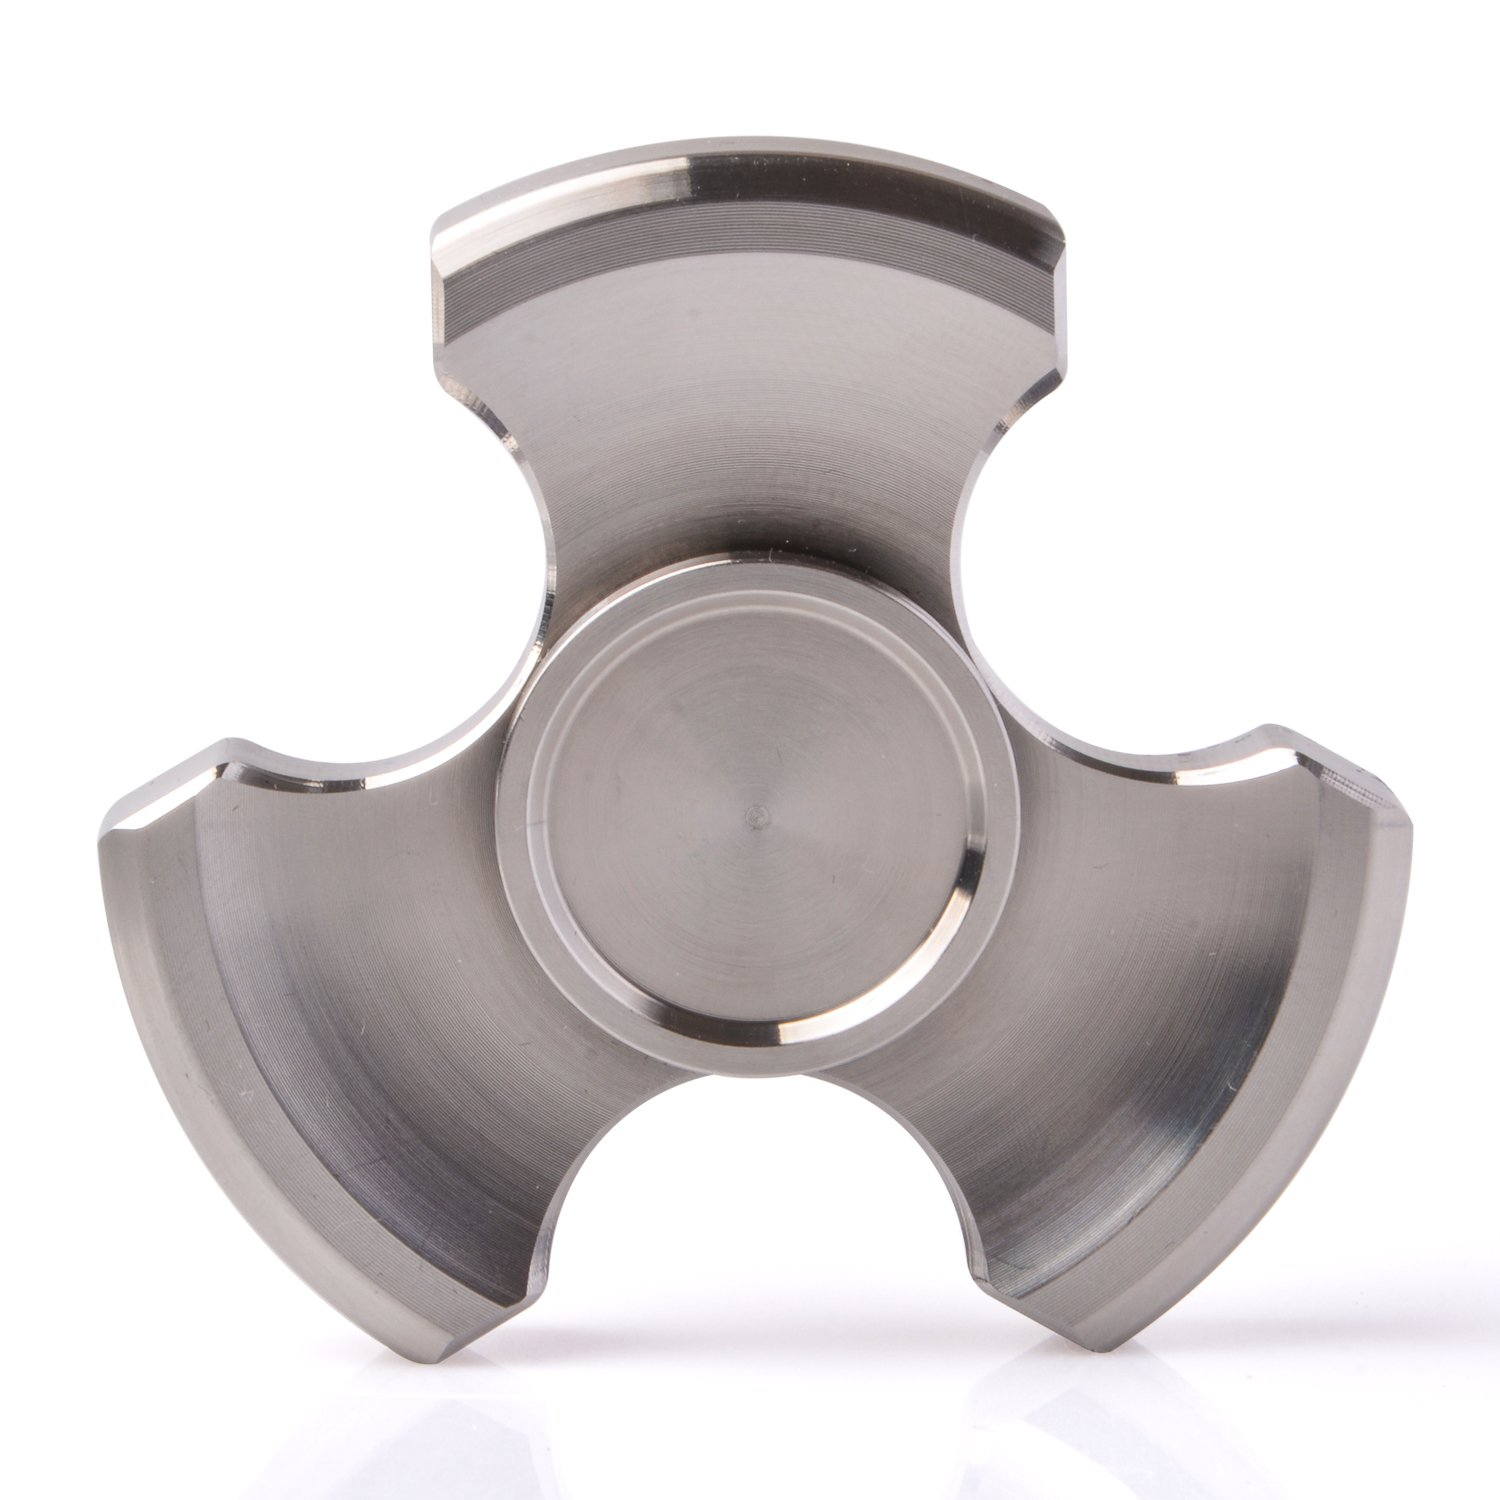 ILoveFidget Fidget Spinner, Best Stainless Steel Hand Spinner EDC Toy, R188 bearing spins up to 8 mins, relieve stress ADHD ADD Austism anxiety boredom, improve focus attention (Tri Bar) by ILoveFidget (Image #1)